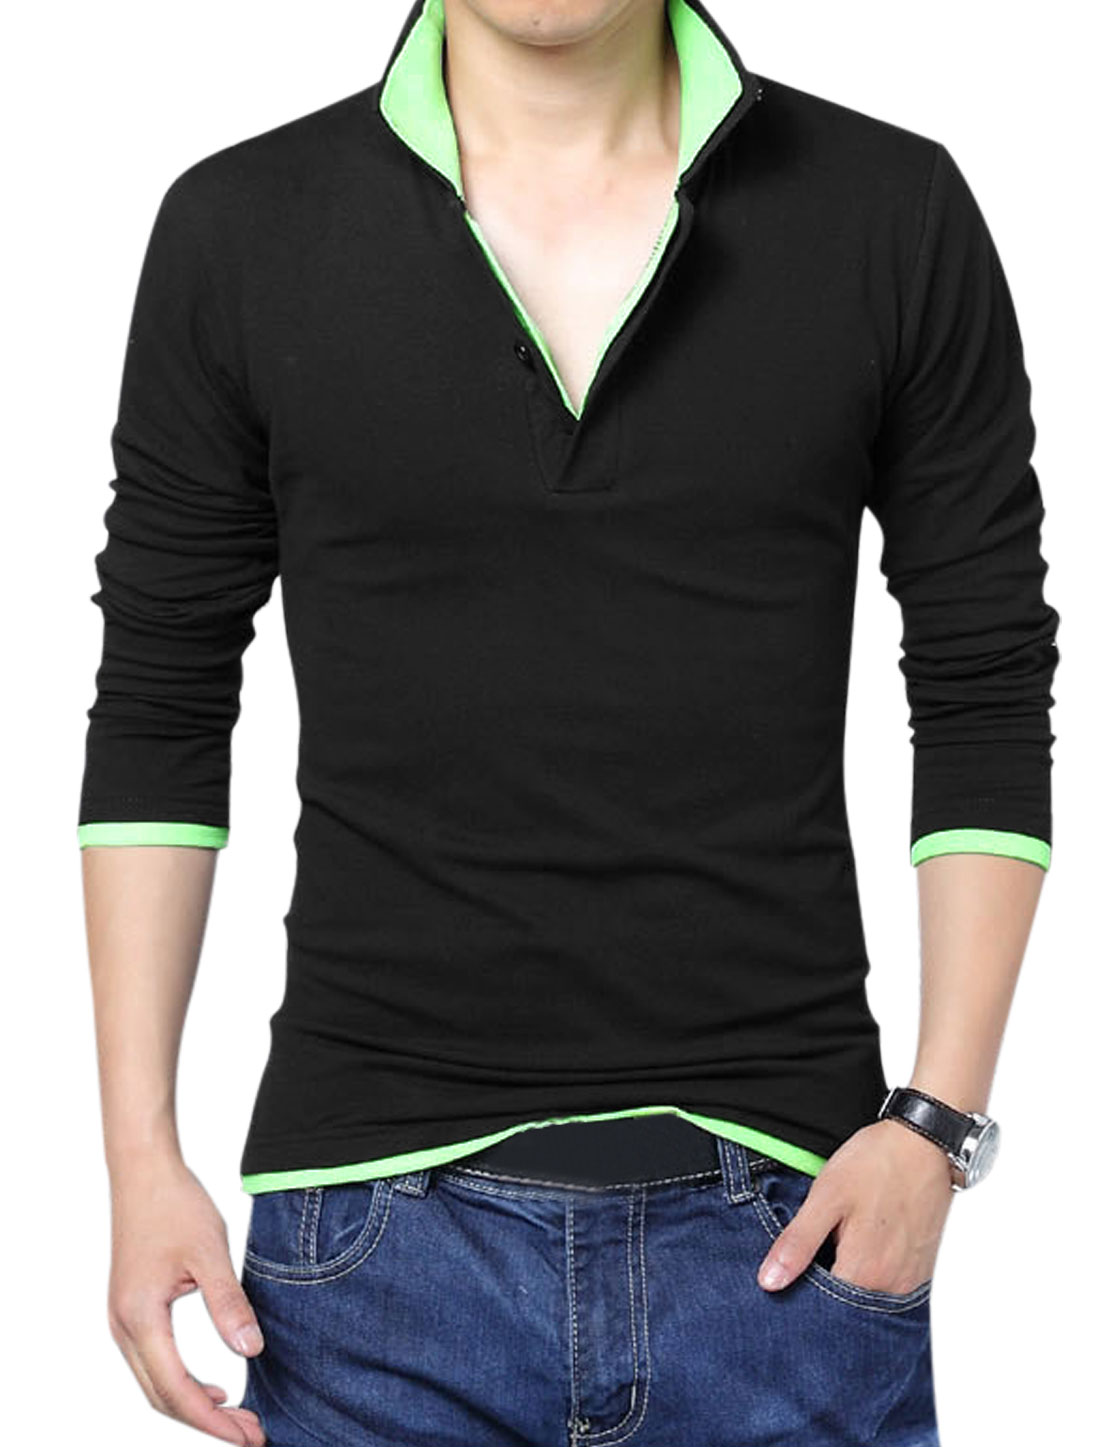 Men Layered Point Collar Long Sleeve Slipover Polo Shirt Black Light Green L